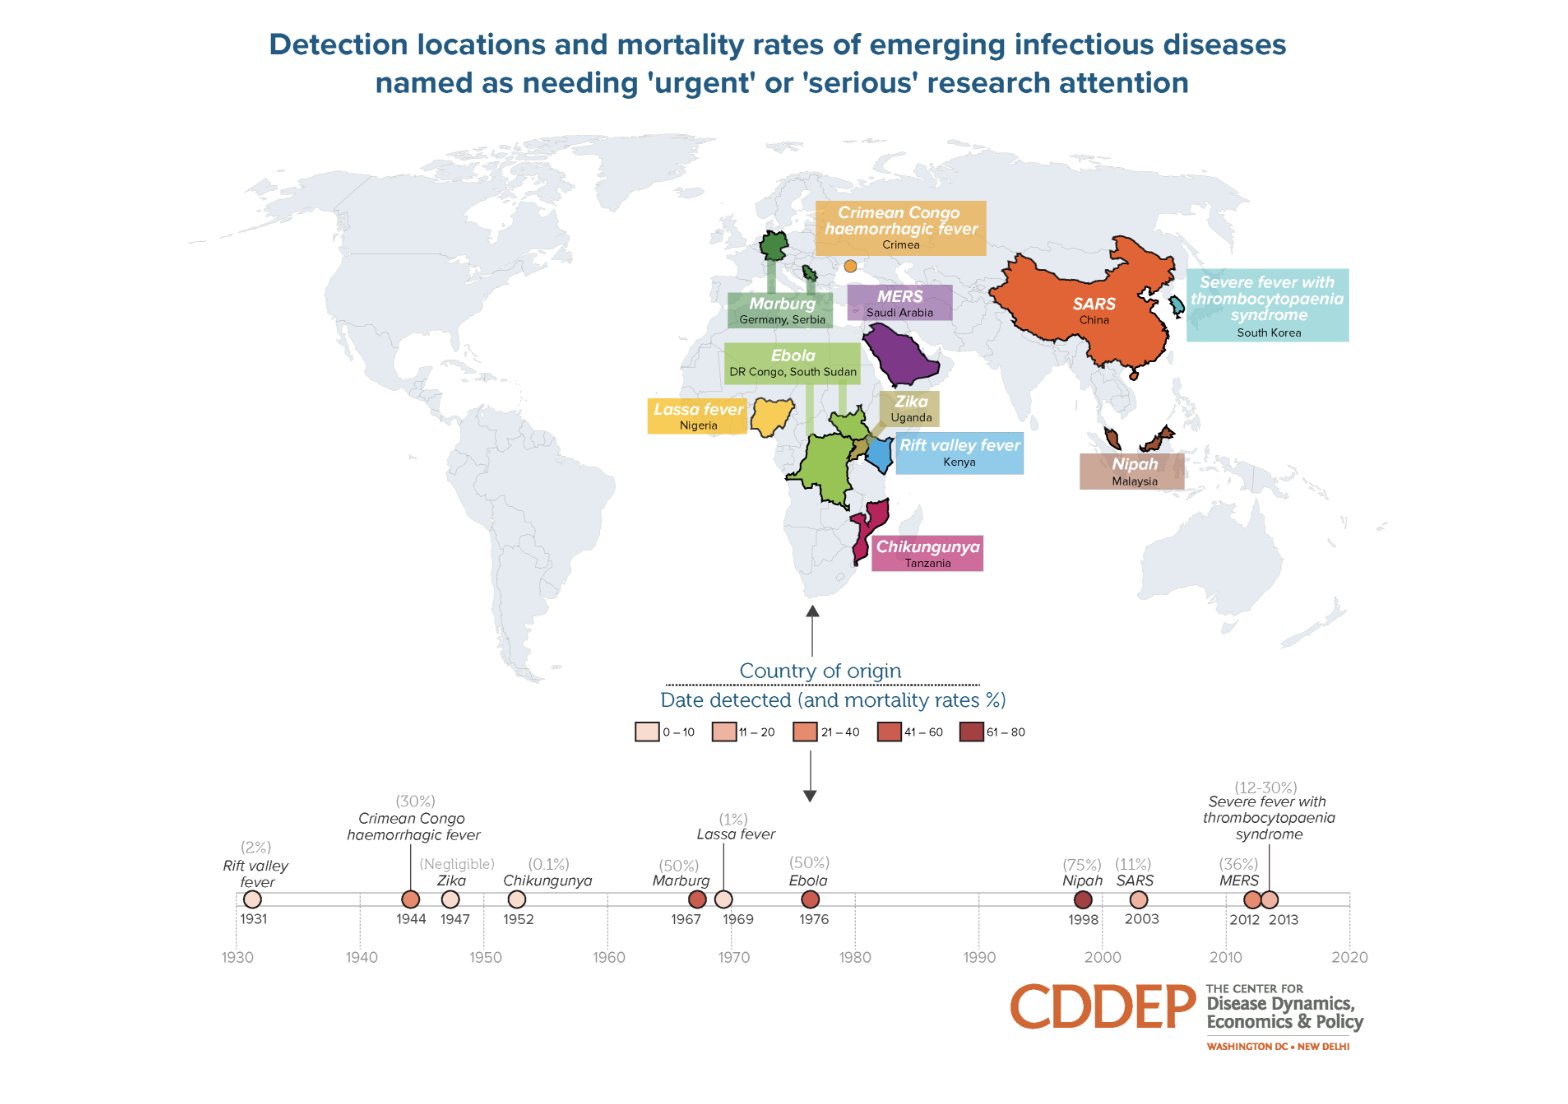 Emerging infectious diseases marked as needing urgent attention